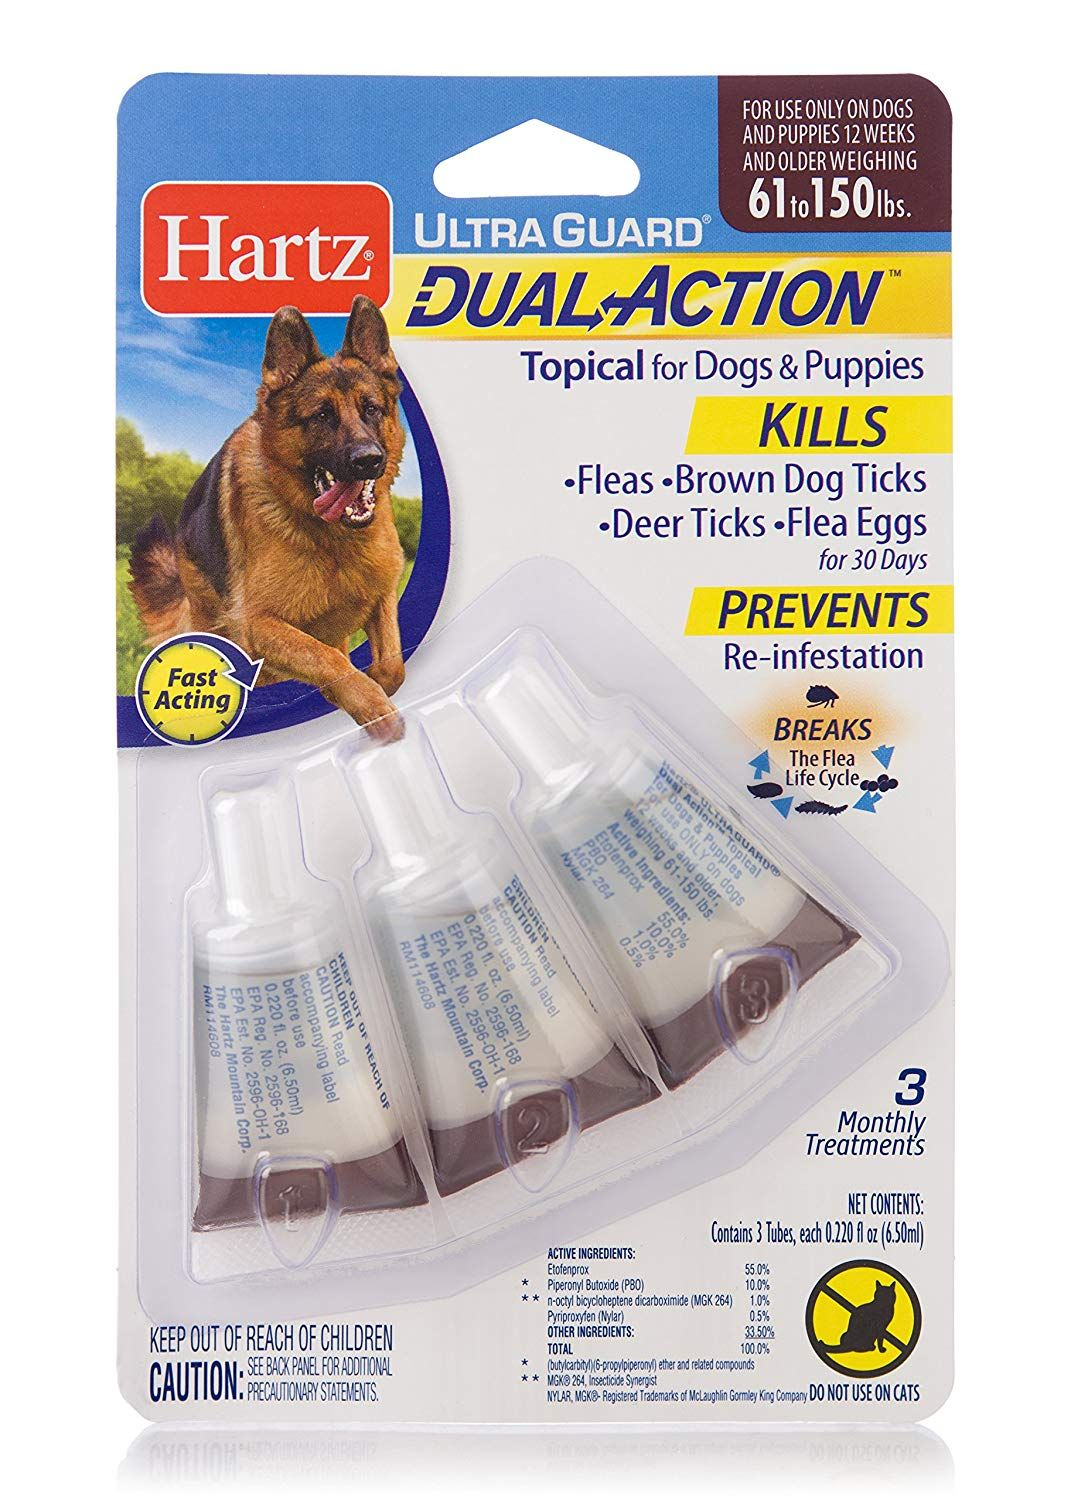 Hartz Ultra Guard Dual Action Drops For Dogs And Puppies Click Image To Review More Details This I Dogs And Puppies Brown Dog Tick Tick Treatment For Dogs